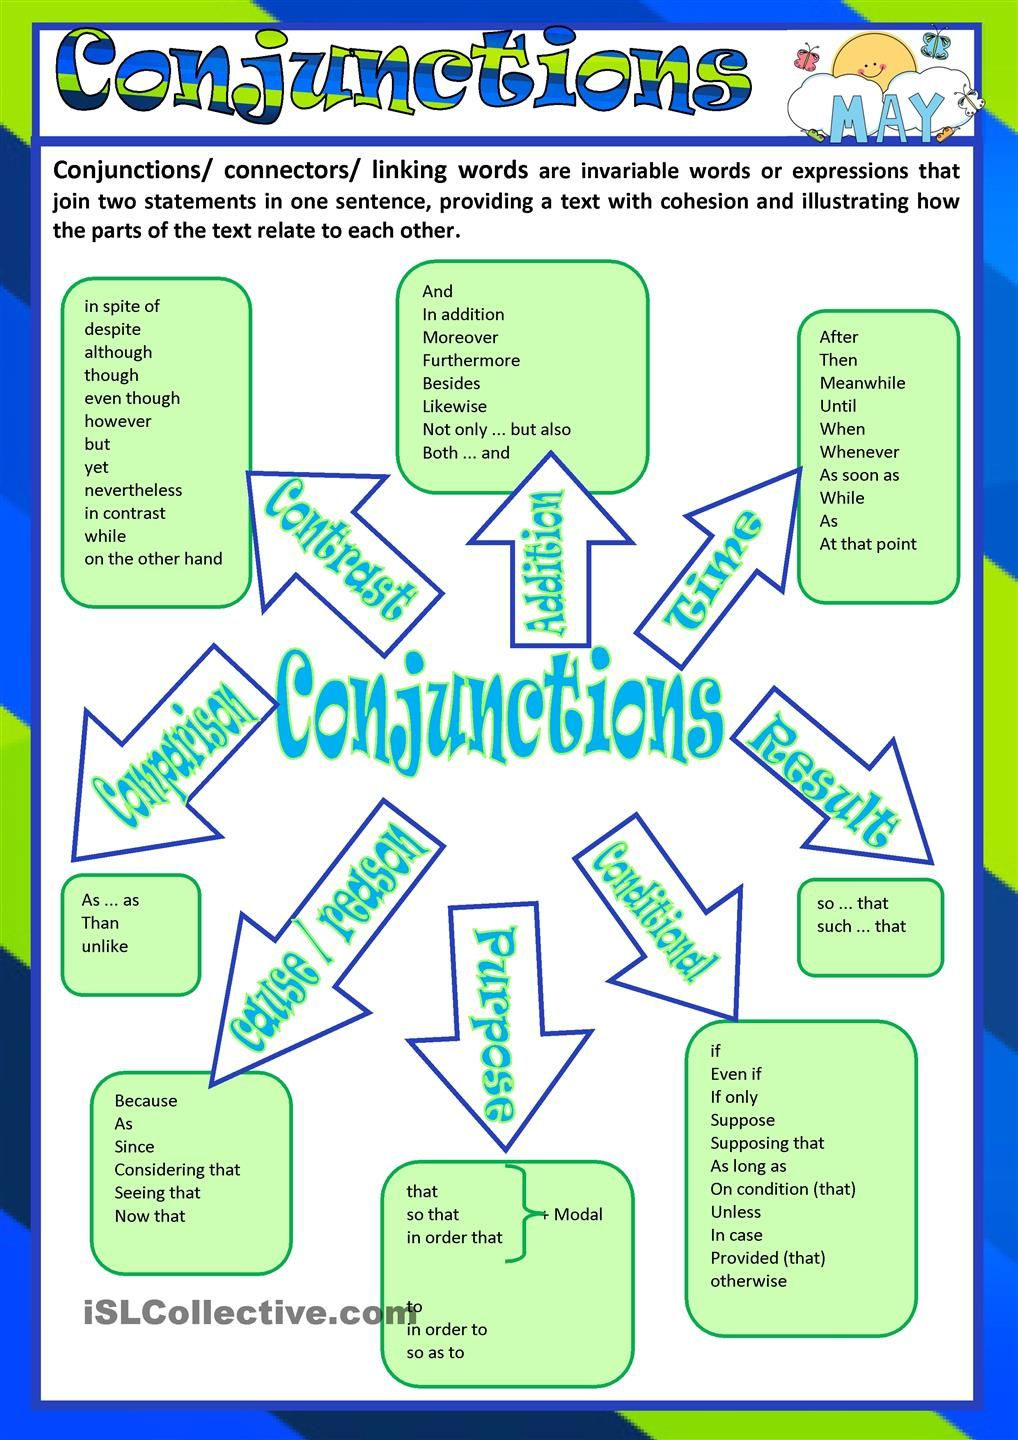 conjunctions english printables student centered a worksheet some examples of conjunctions and 2 exercises gap filling and rewriting sentences to use them conjunctions aka connectives e g and